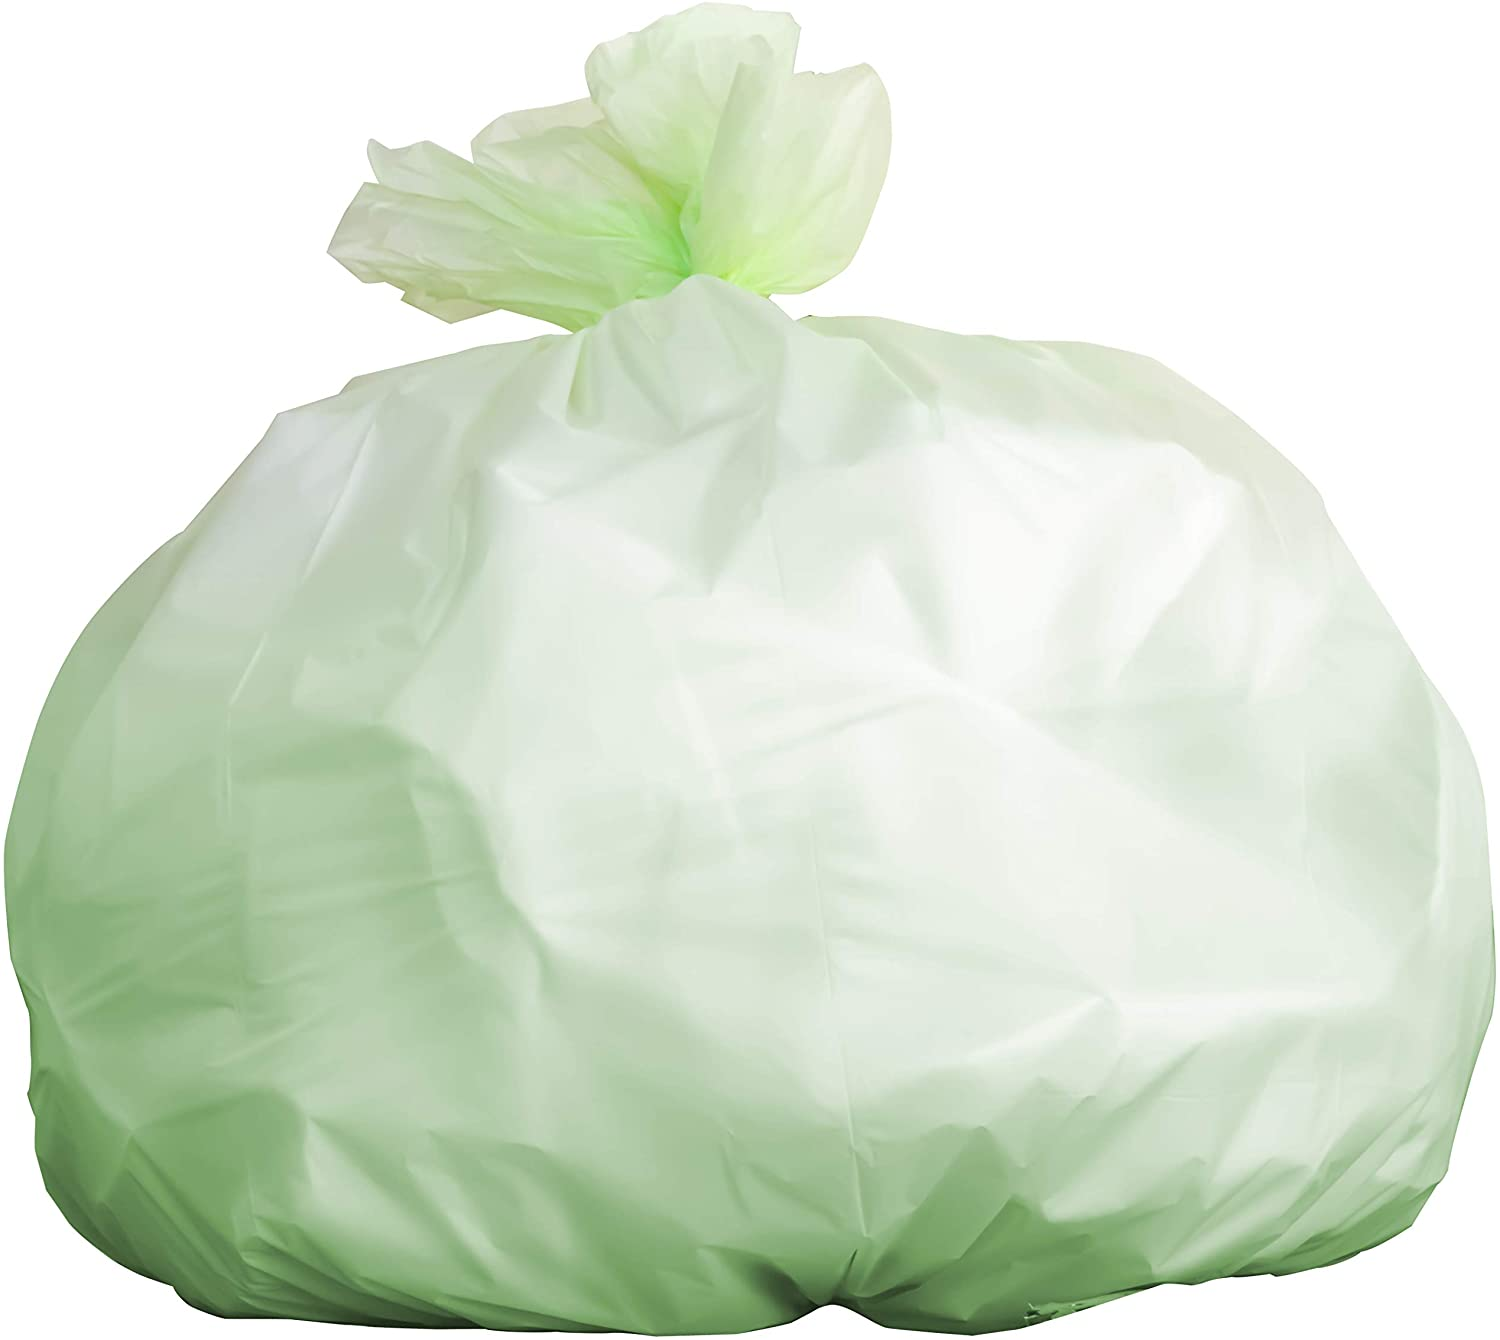 Biodegradable Tall 13 Gallon Garbage Bags 20 Ct. ASTM D6400 and BPI-Certified Compostable Trash Can Liners. Hefty for Kitchen Food Scraps and Compost Bins. Eco-Friendly and Plant-Based for Green Homes